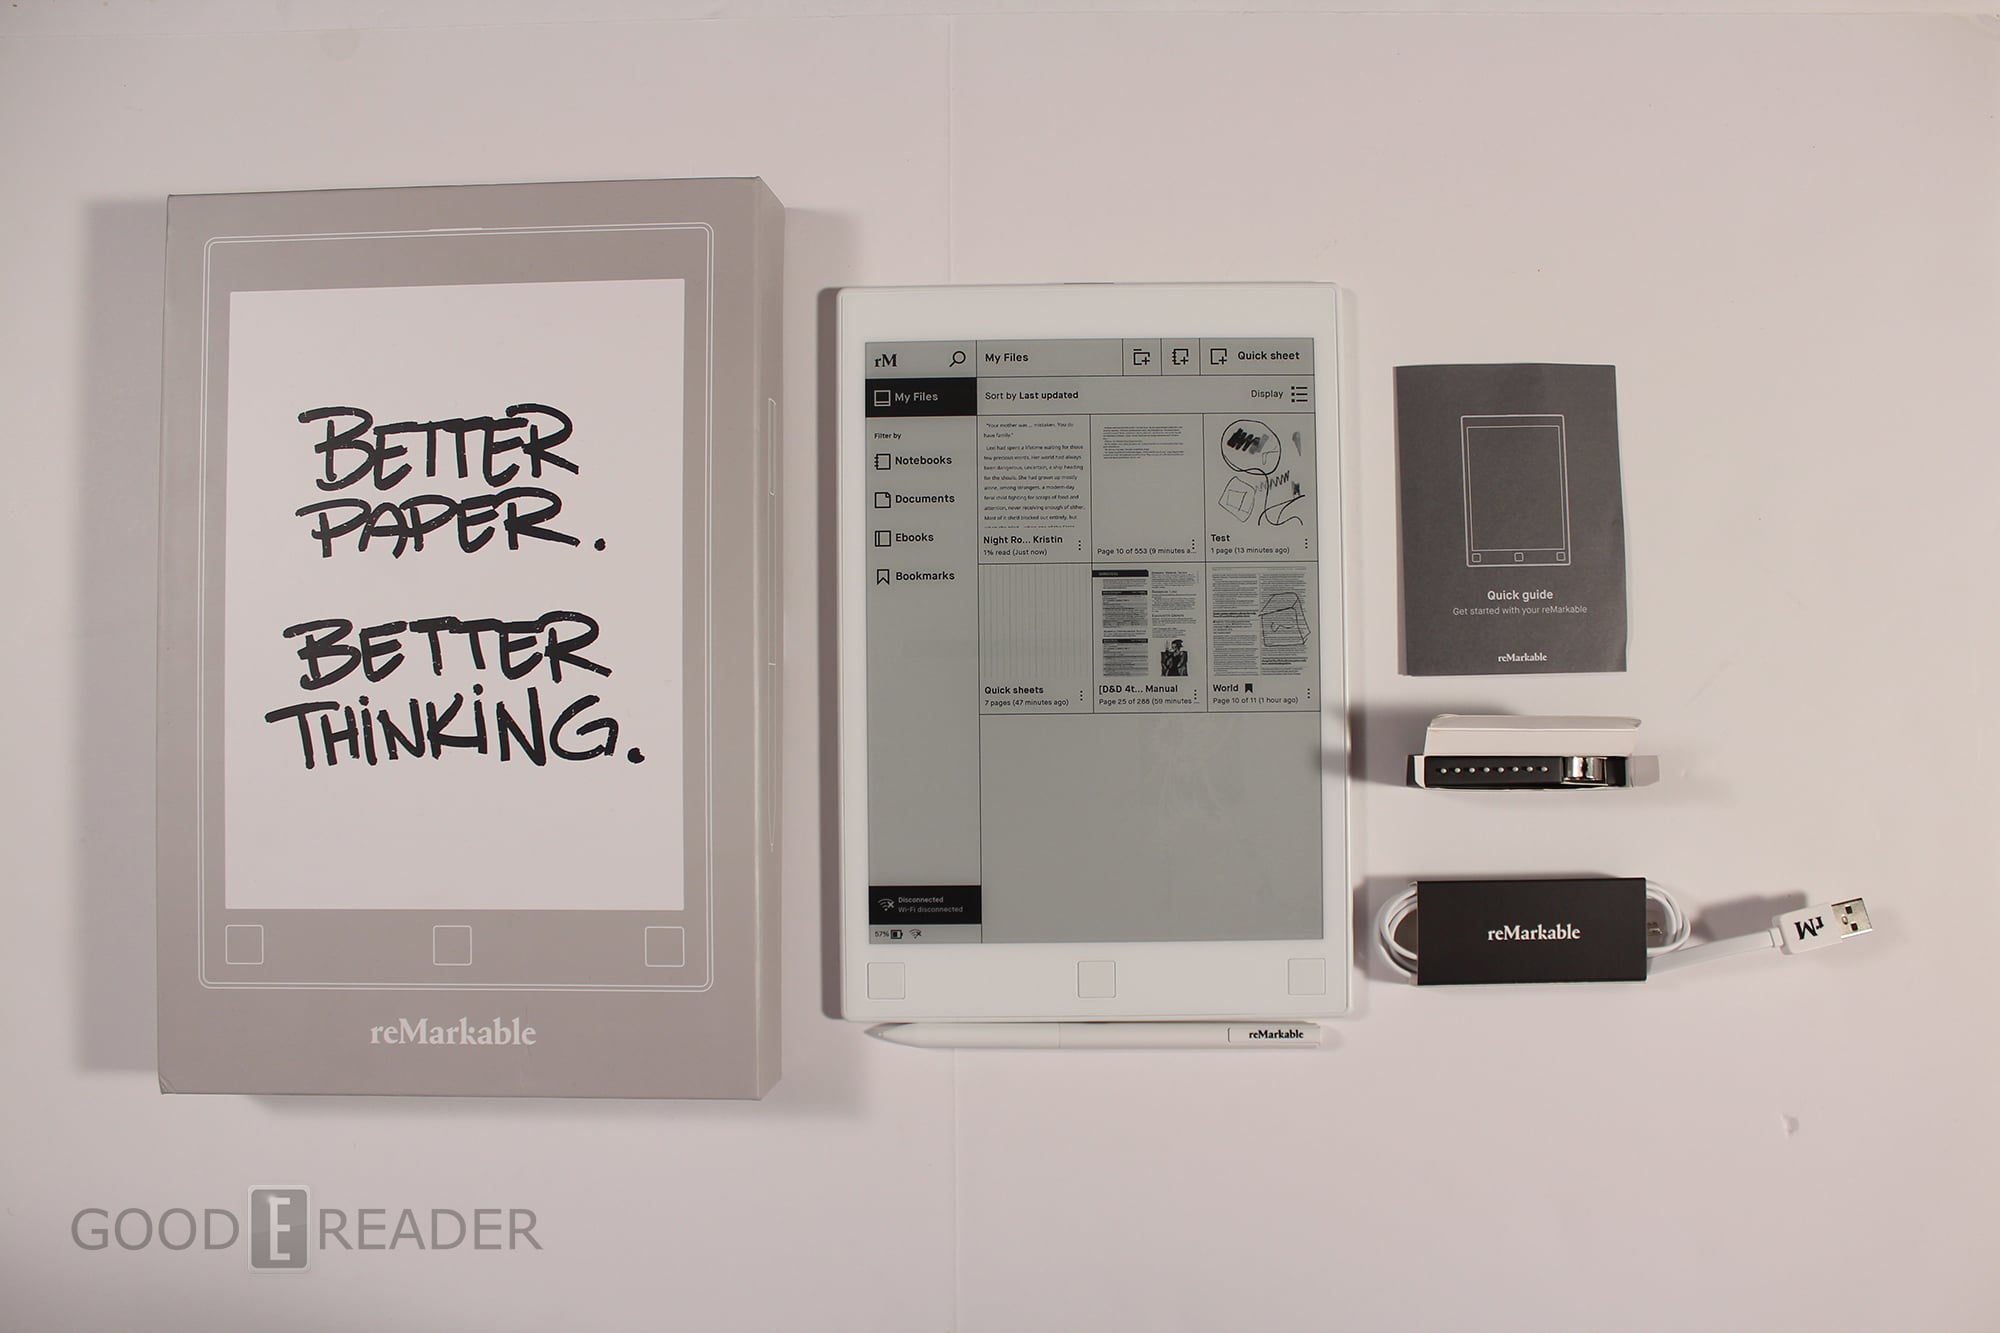 remarkable paper tablet review